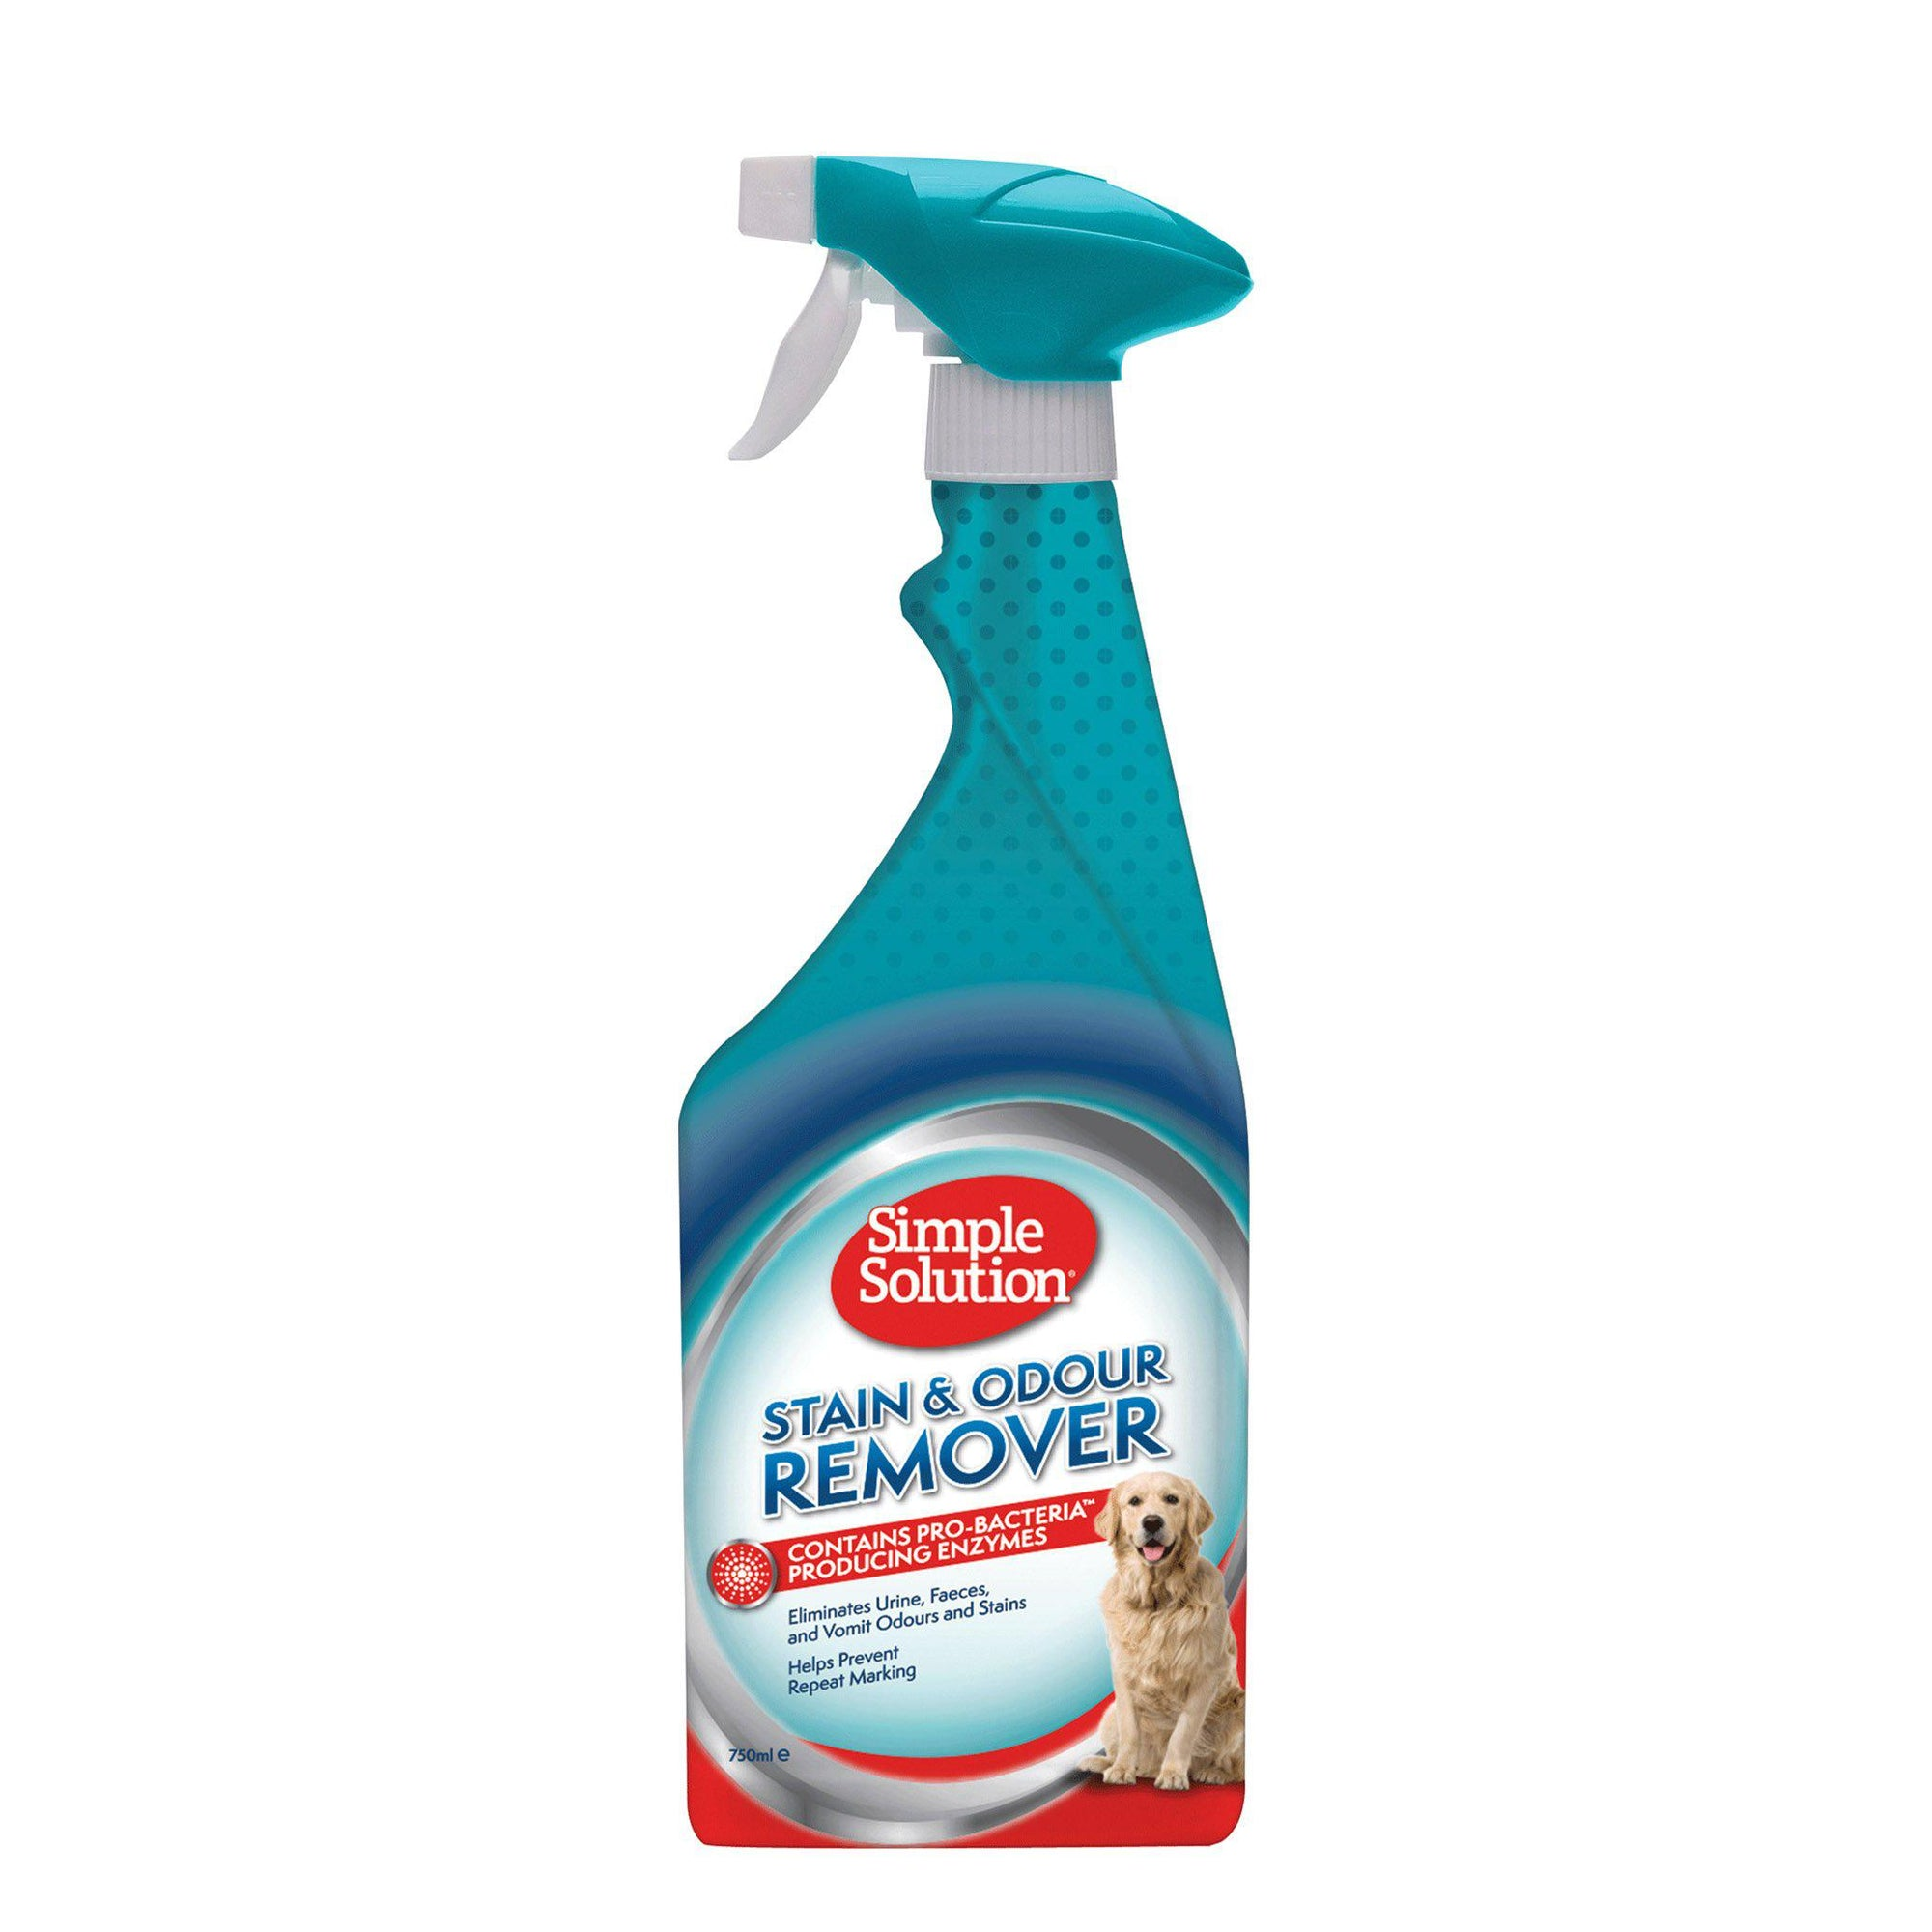 Simple Solution Dog Stain & Odour Remover 750ml - ComfyPet Products